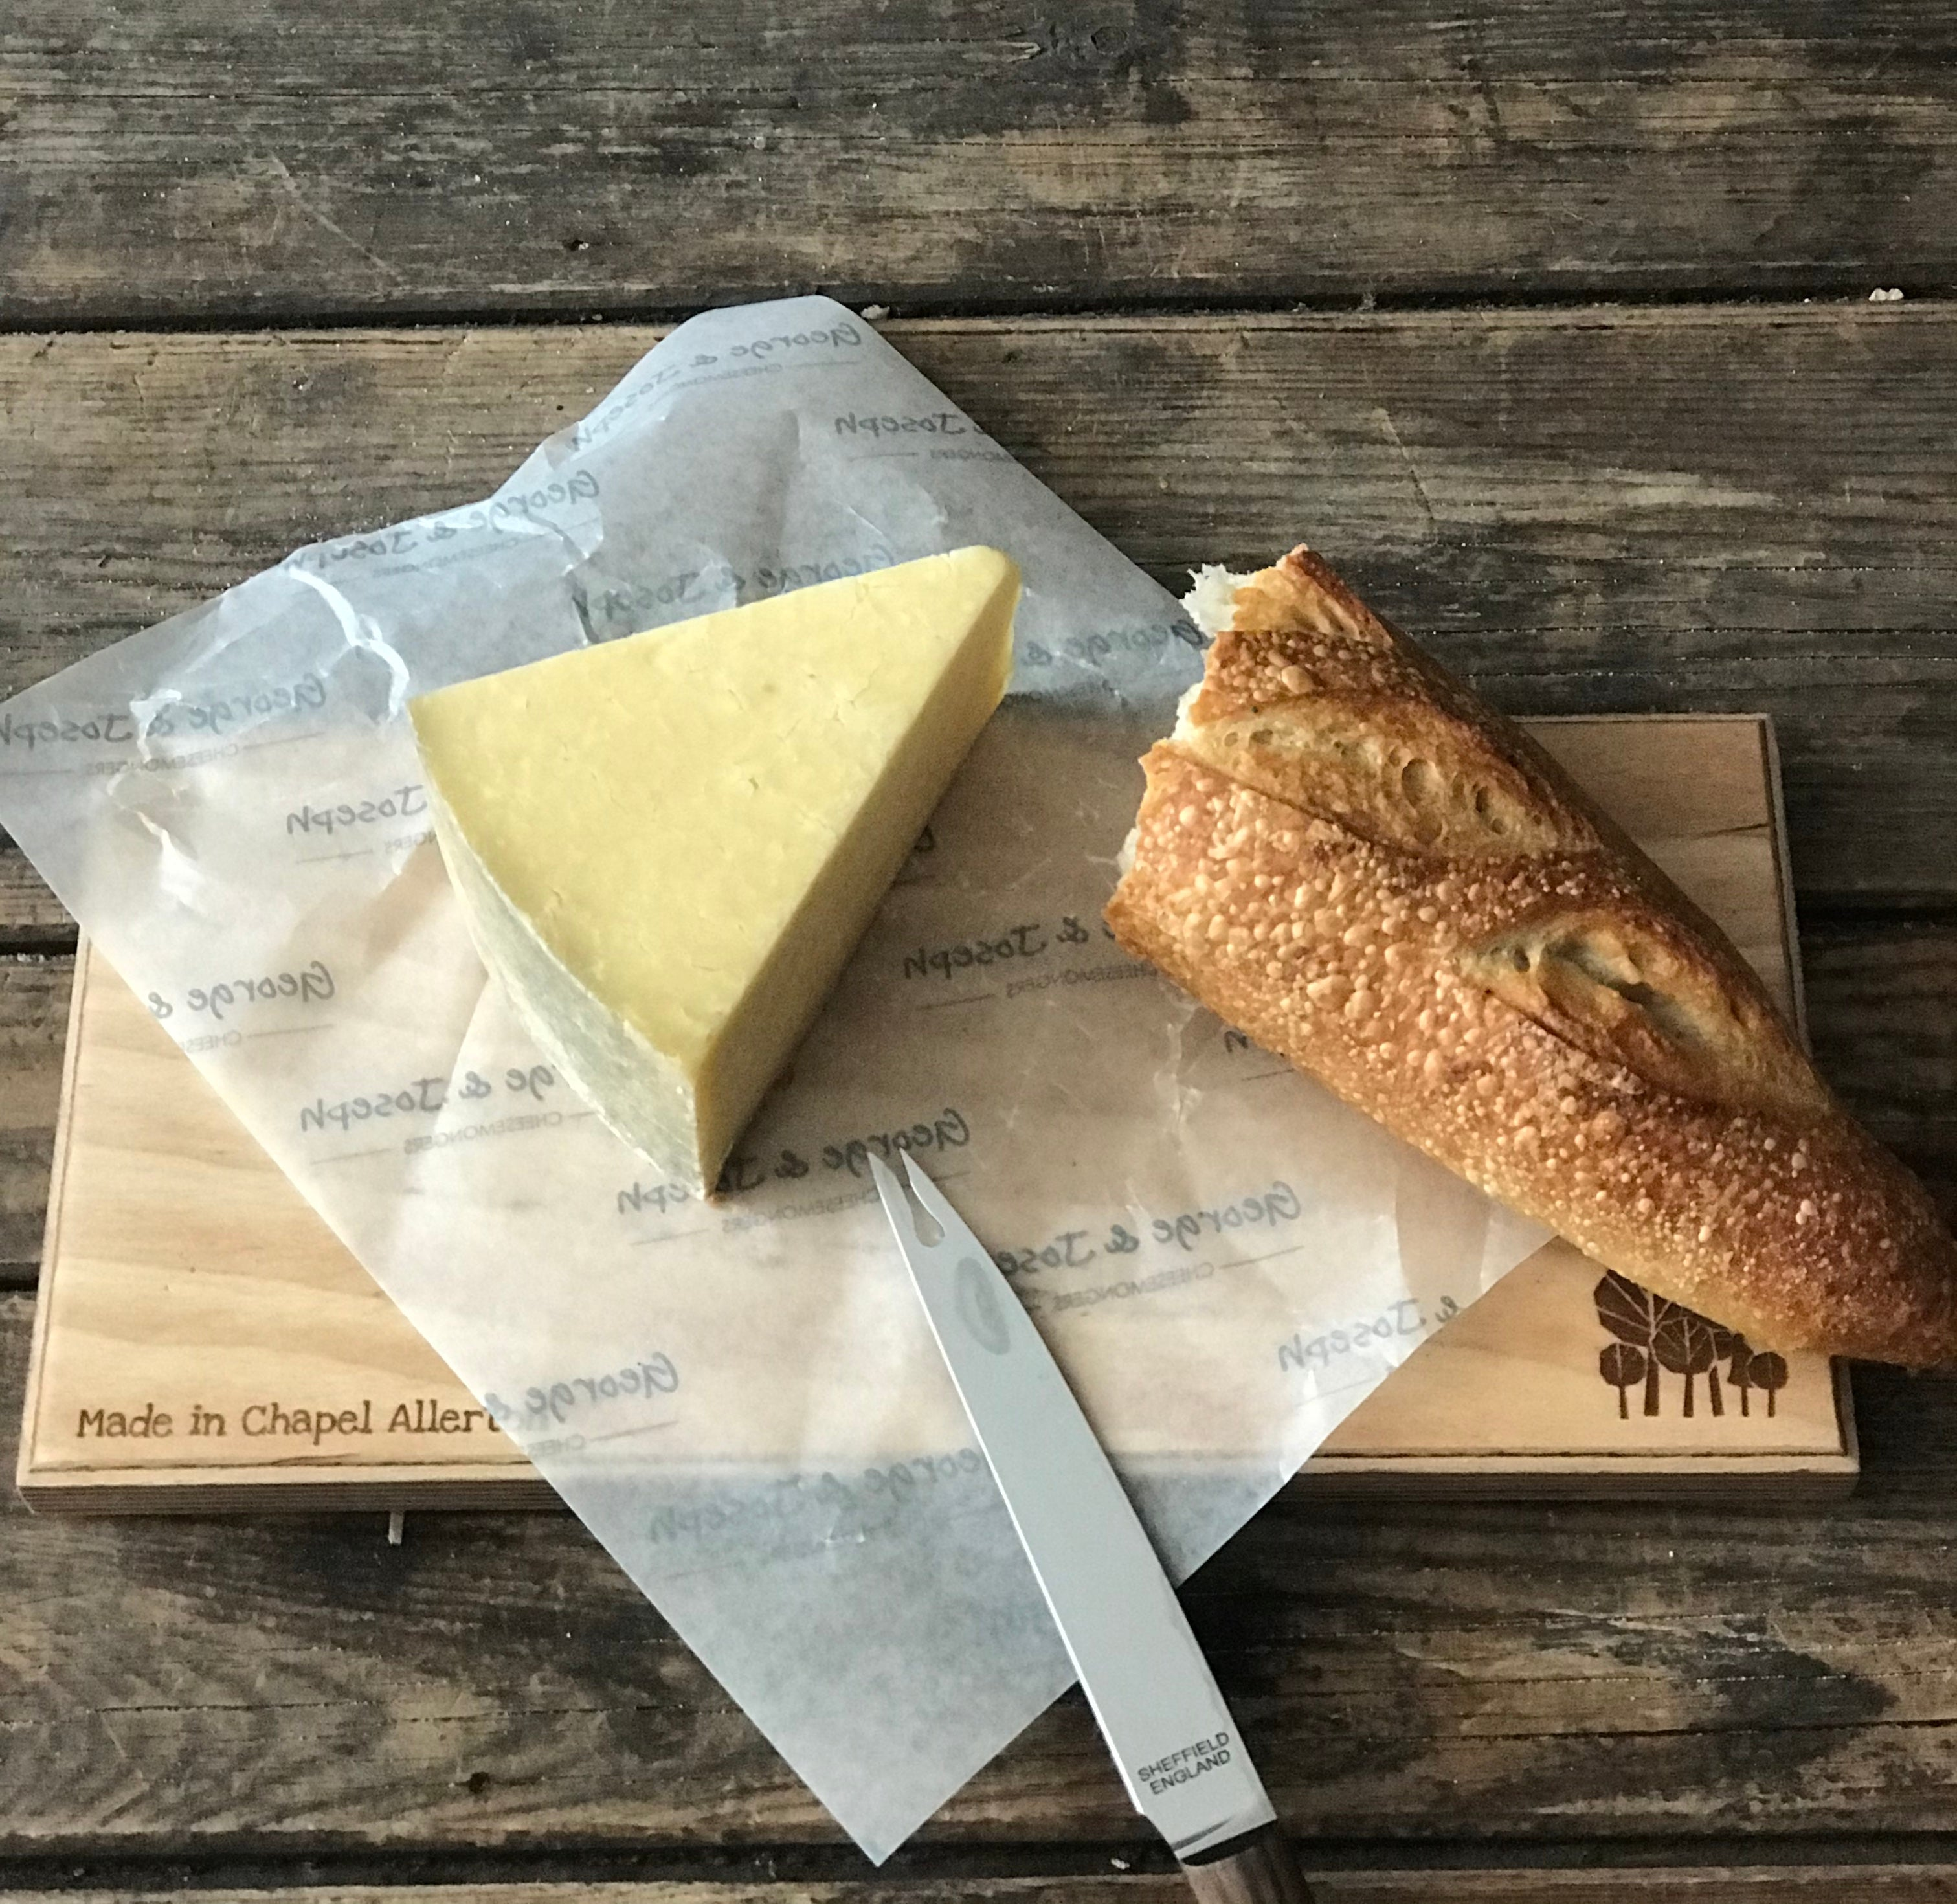 cheese care from george and joseph cheesemongers